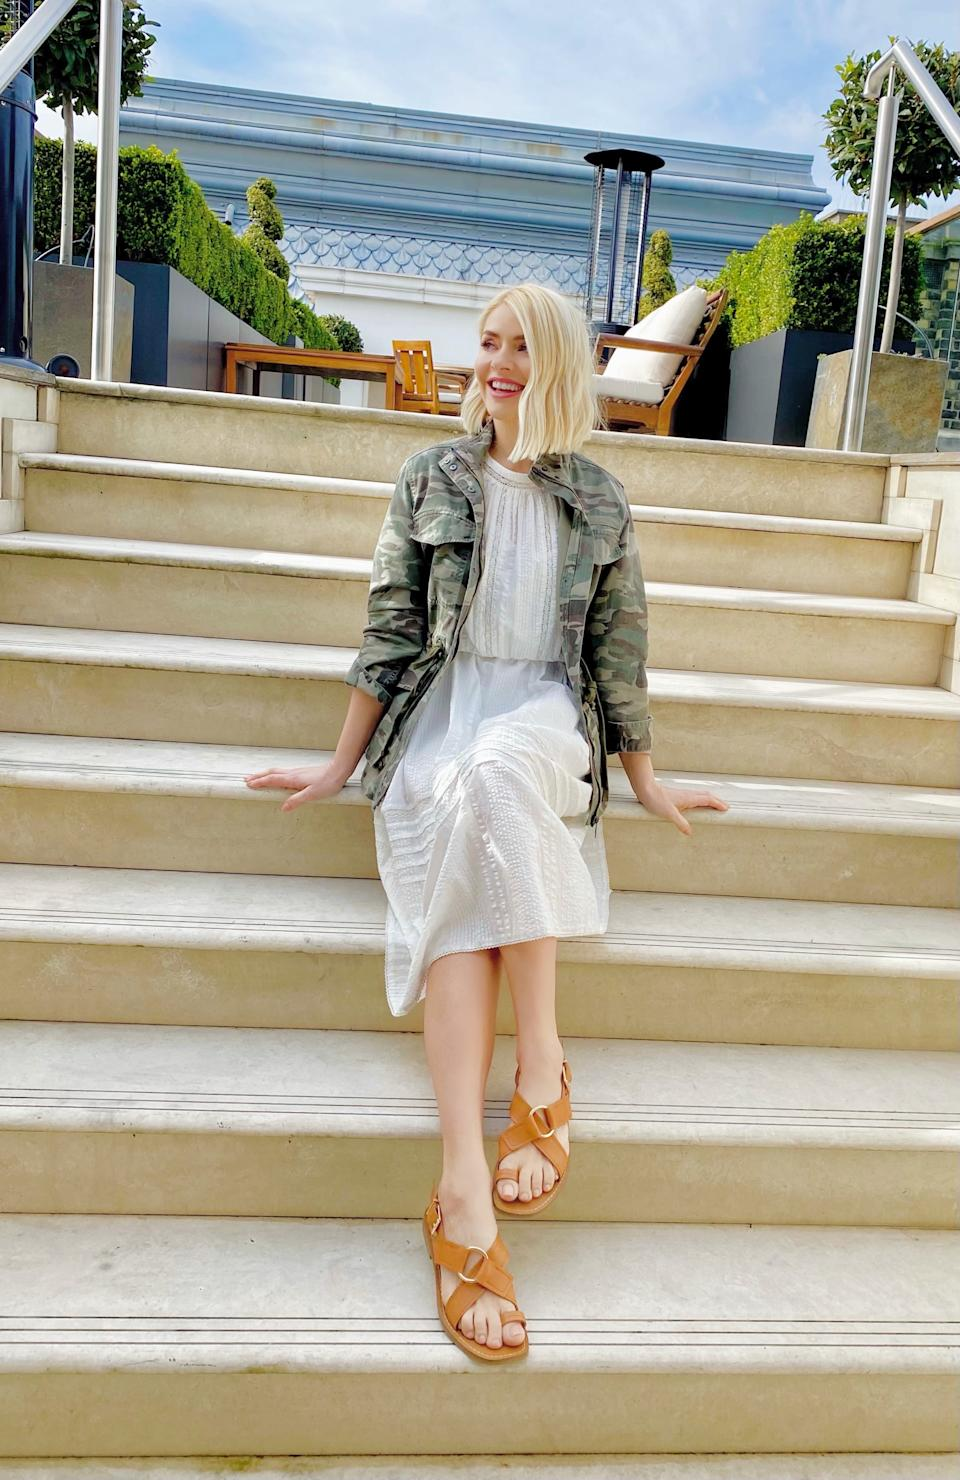 Holly Willoughby styles M&S' Pure Cotton Lace Trim Waisted Dress with a camouflage jacket and sandals for her first post-lockdown look.  (Marks and Spencer)